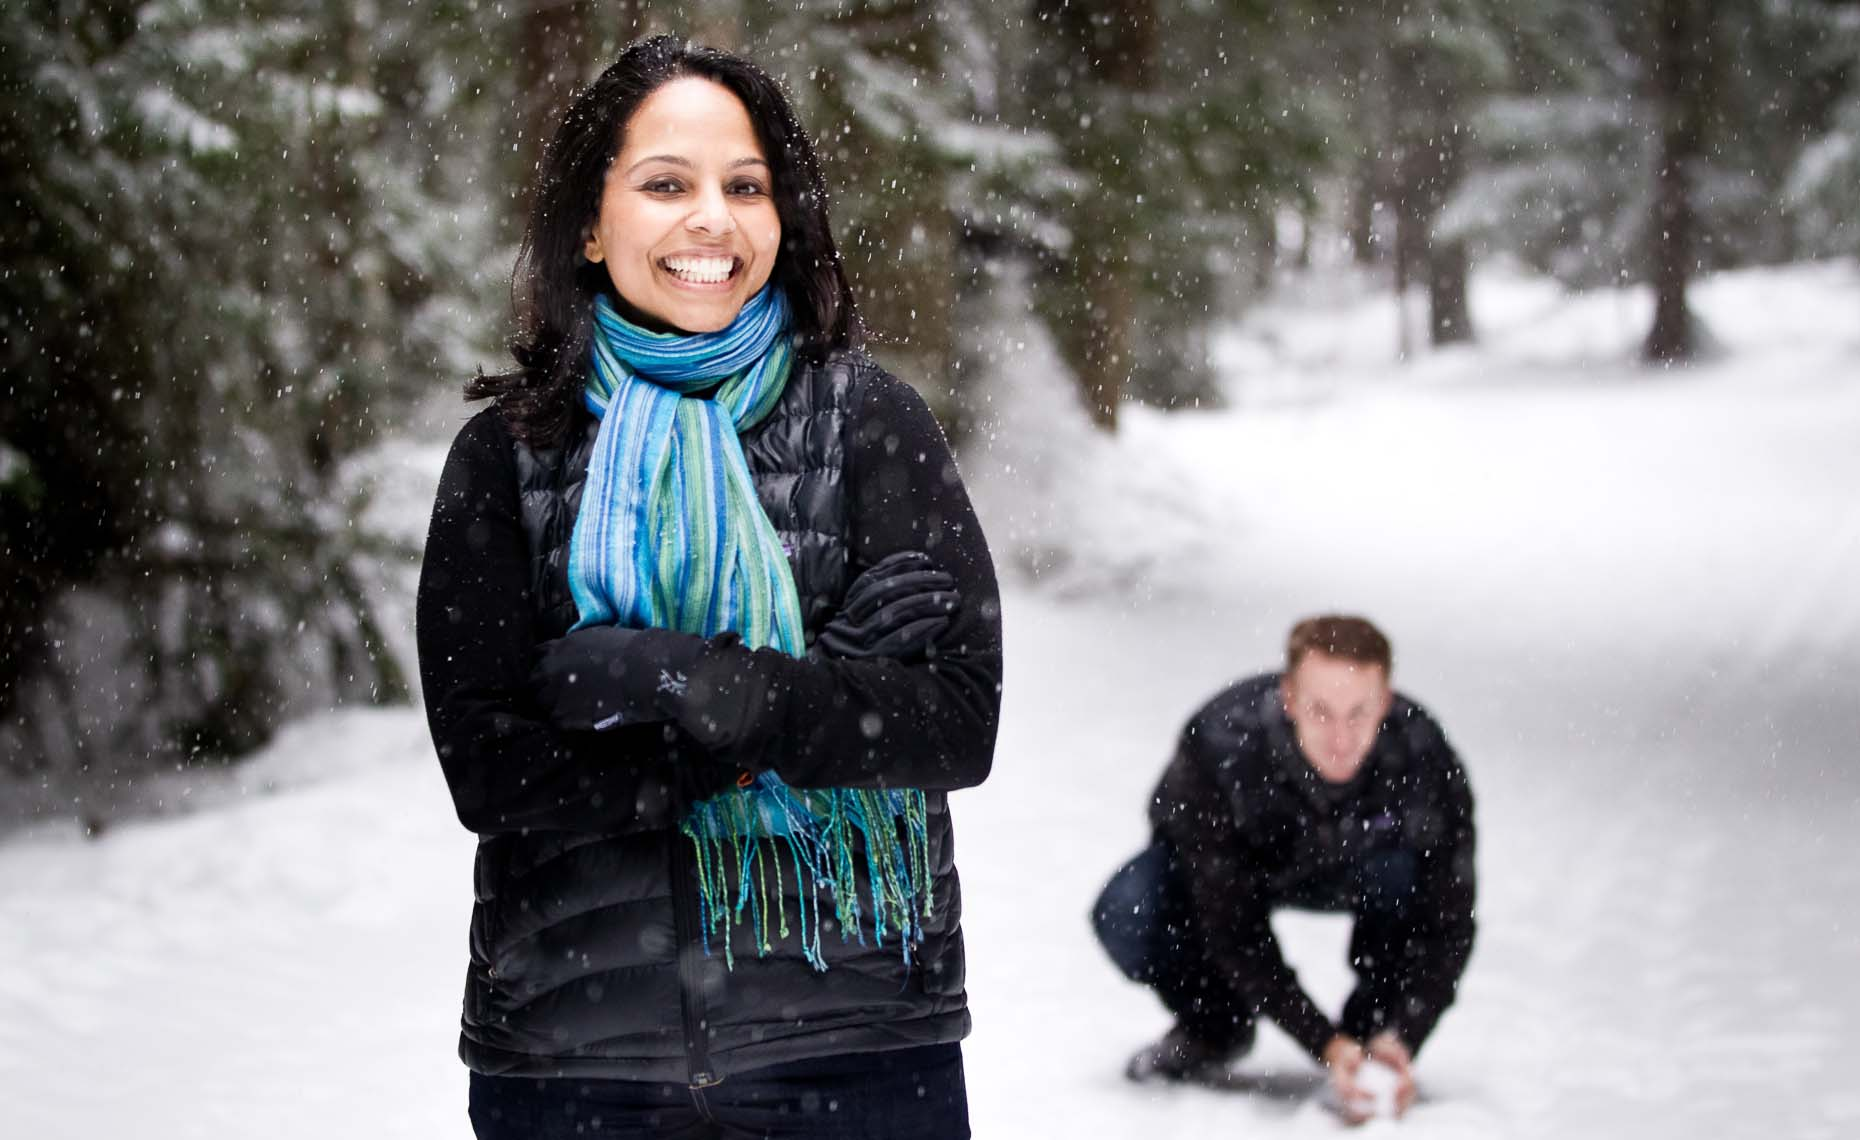 Snowy winter engagement photo session in Whistler, BC